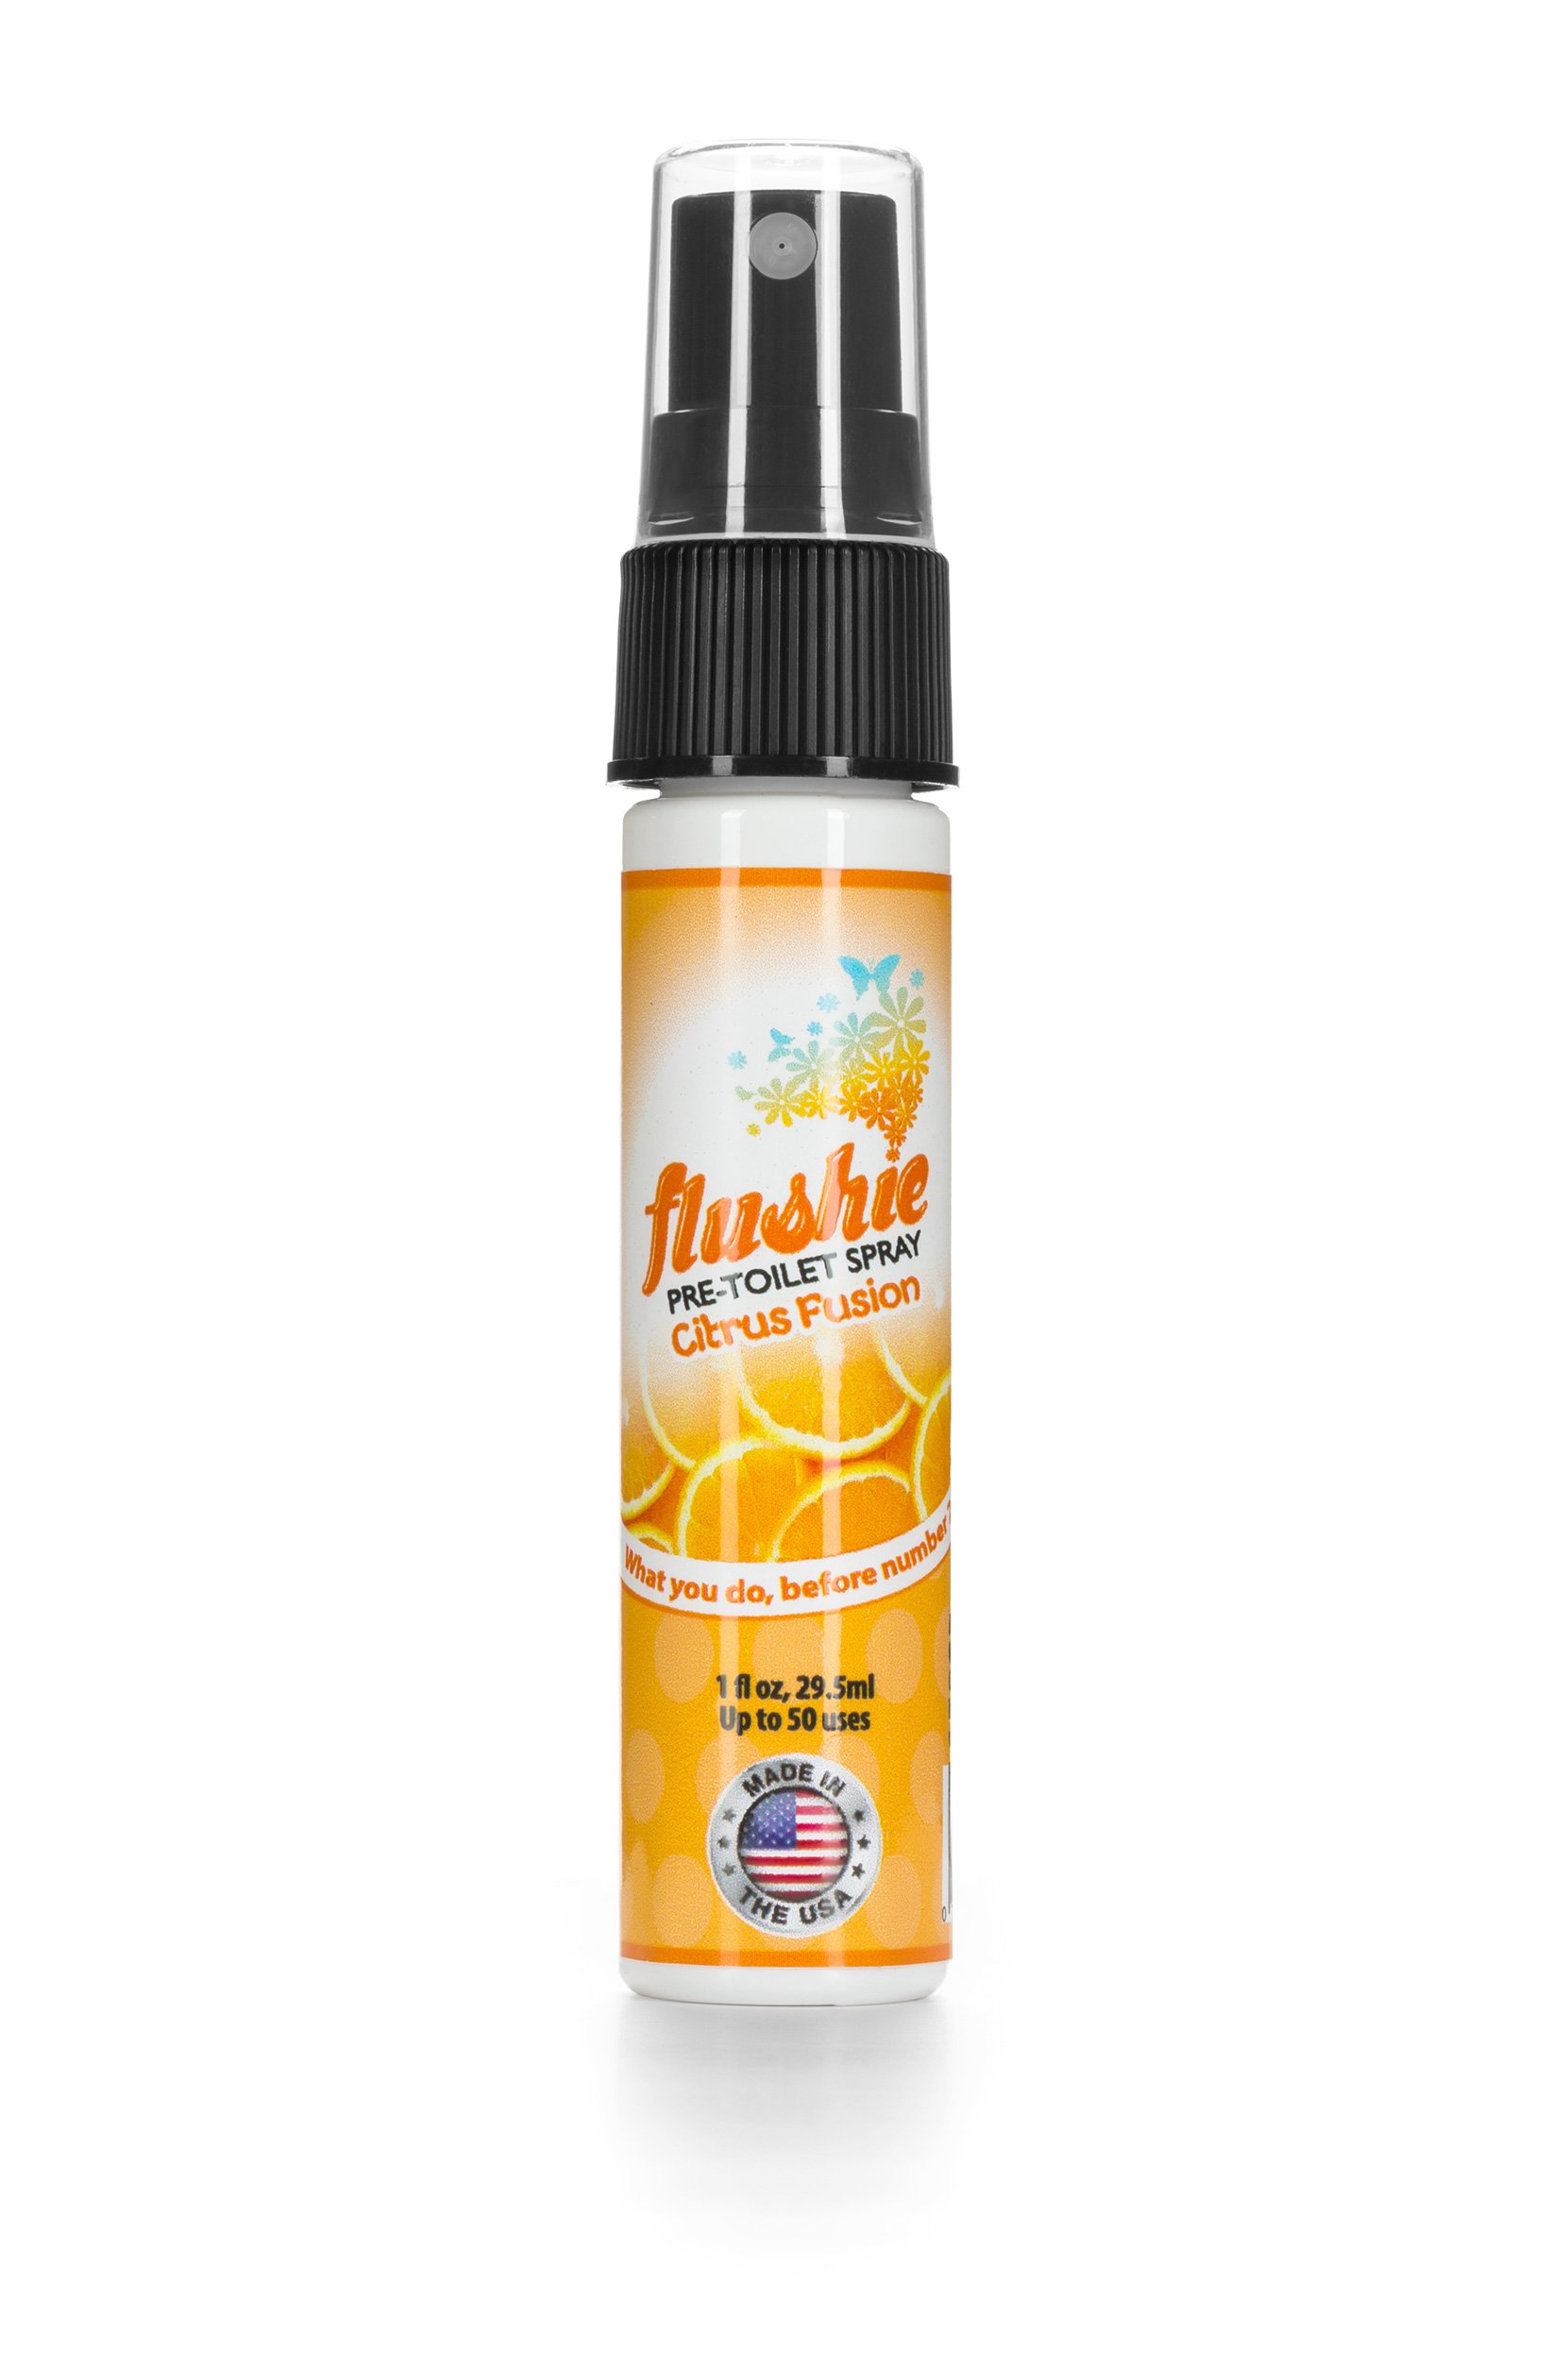 Flushie Pre-Toilet Spray 1- Ounce Travel Size (4pack- citrus, linen, lavender, unscented), Toilet Spray, Bathroom Deodorizer, Poop Spray, Before You Go Spray, Perfect For Travel, Fits In Any Purse by Flushie Pre-Toilet Sprays (Image #2)